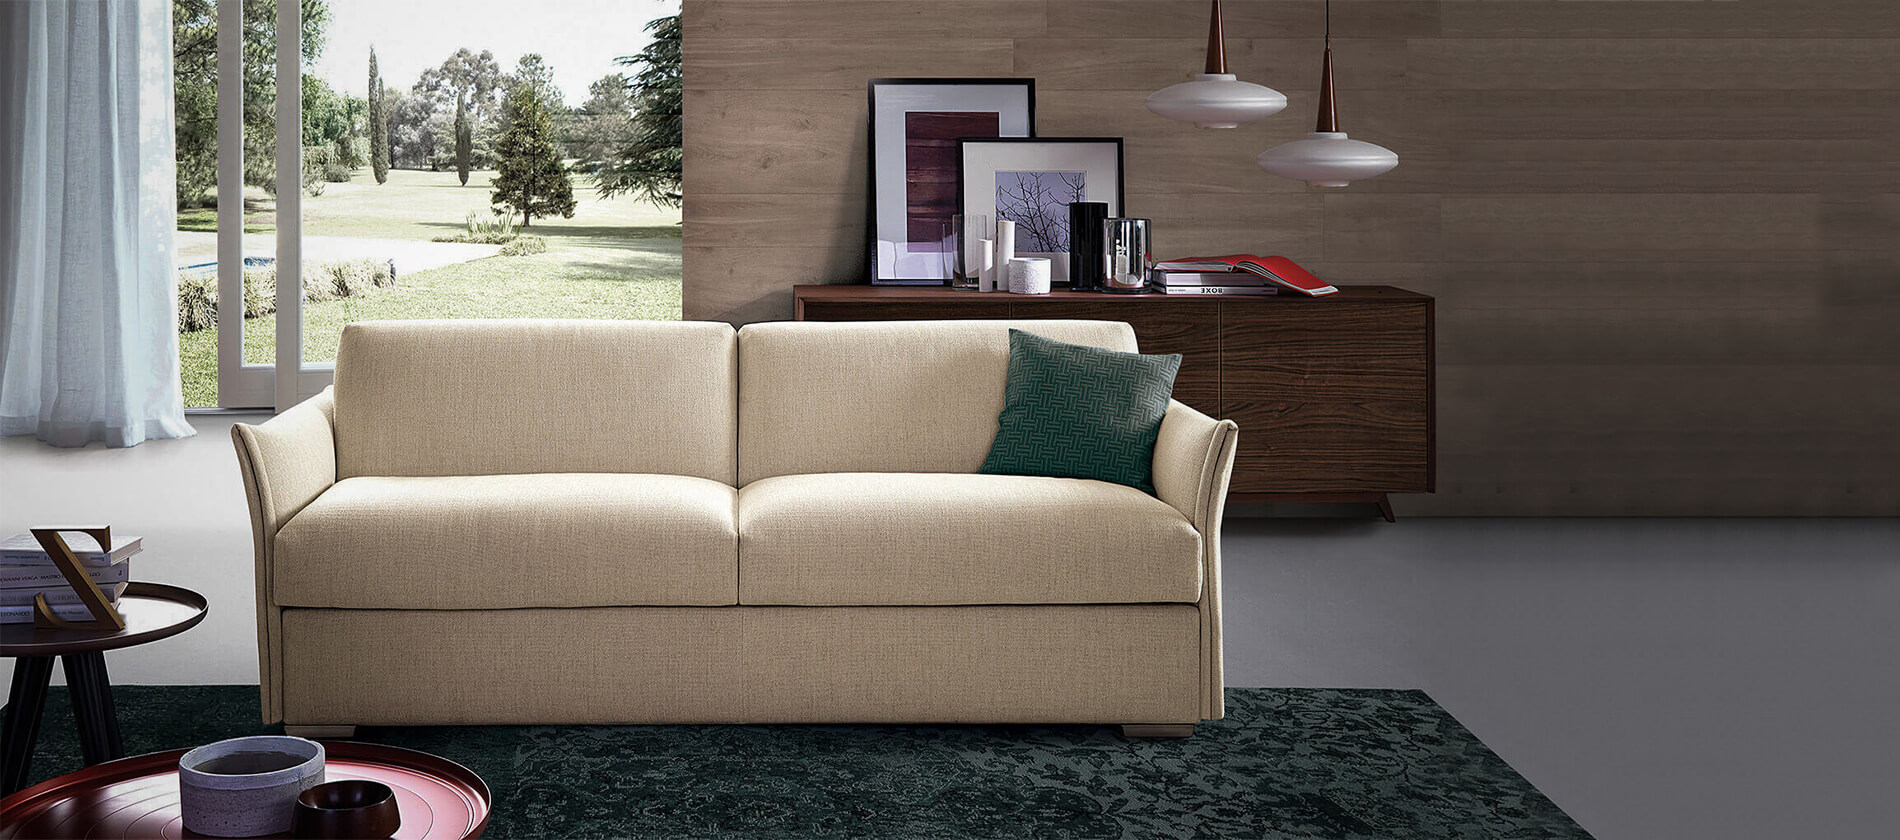 Bettsofa Schlafsofa Young Pol74